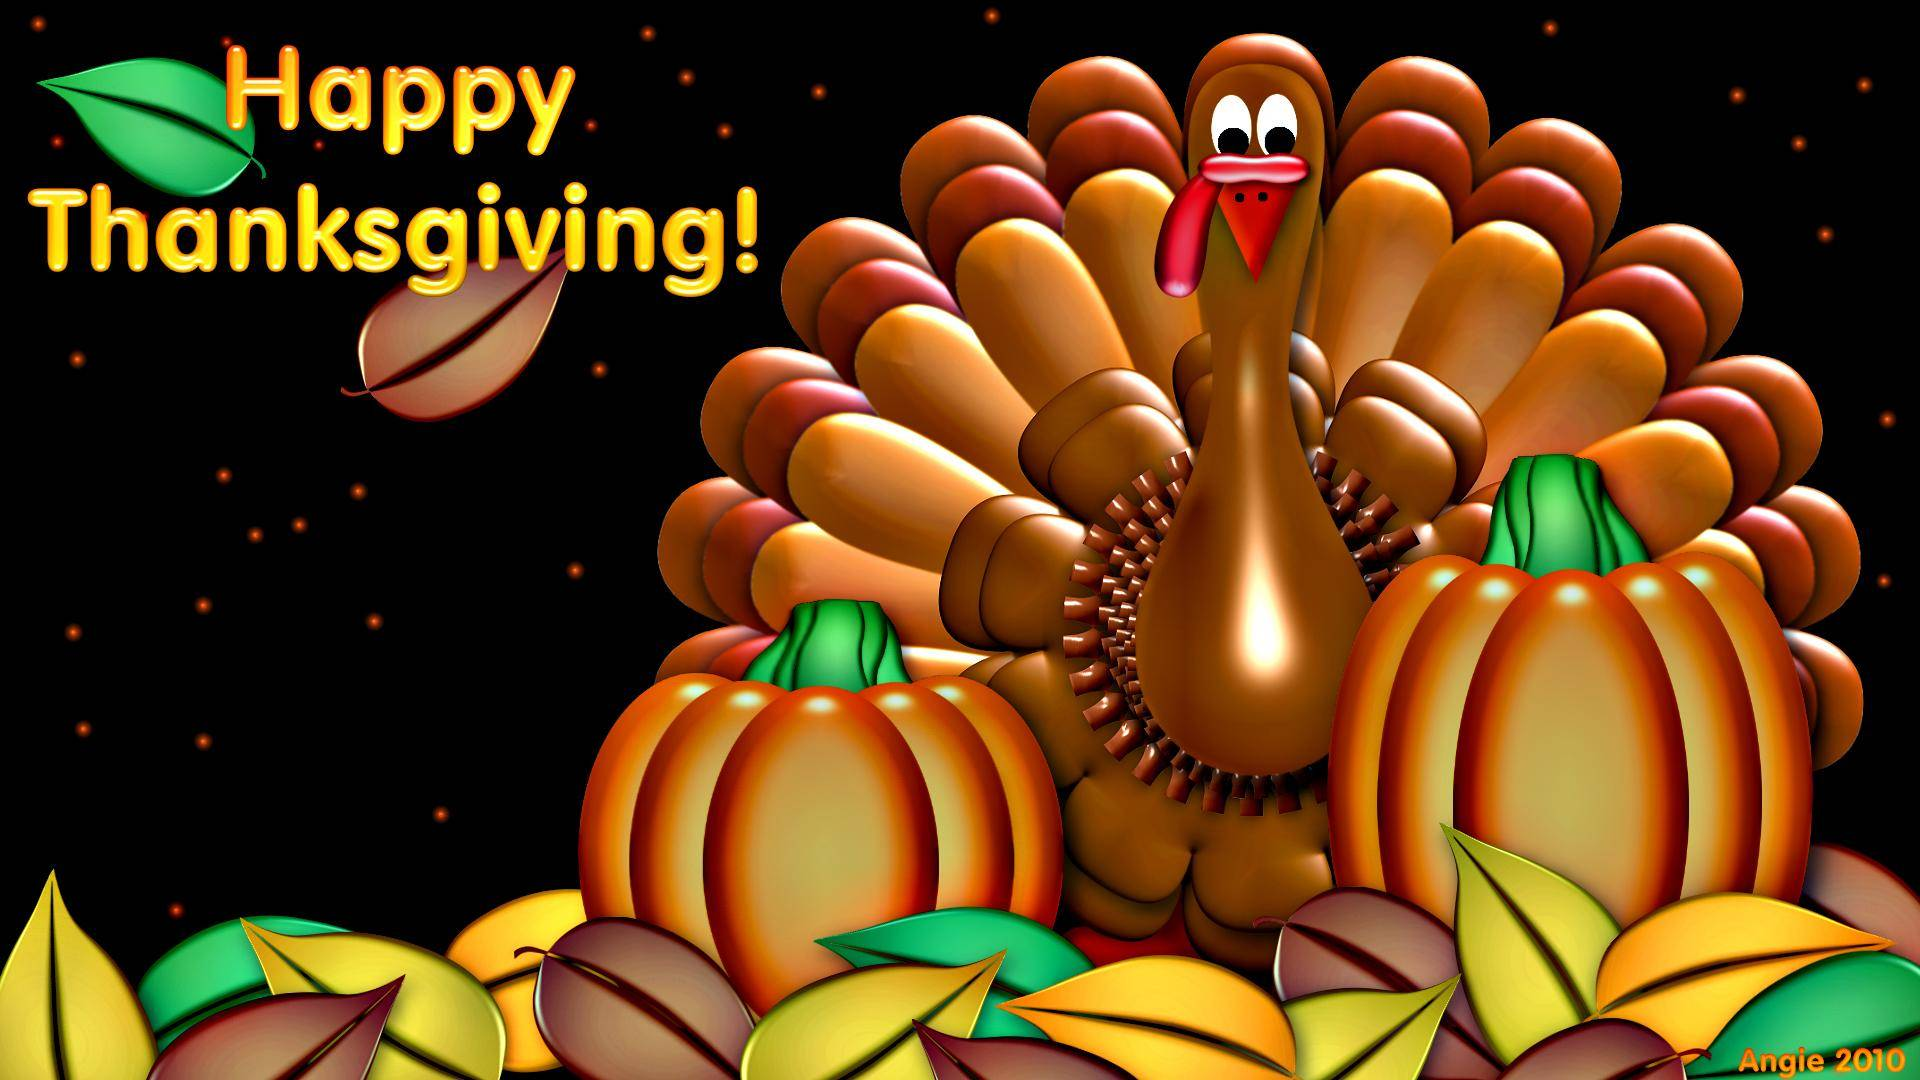 Funny Thanksgiving Wallpaper Backgrounds 1920x1080